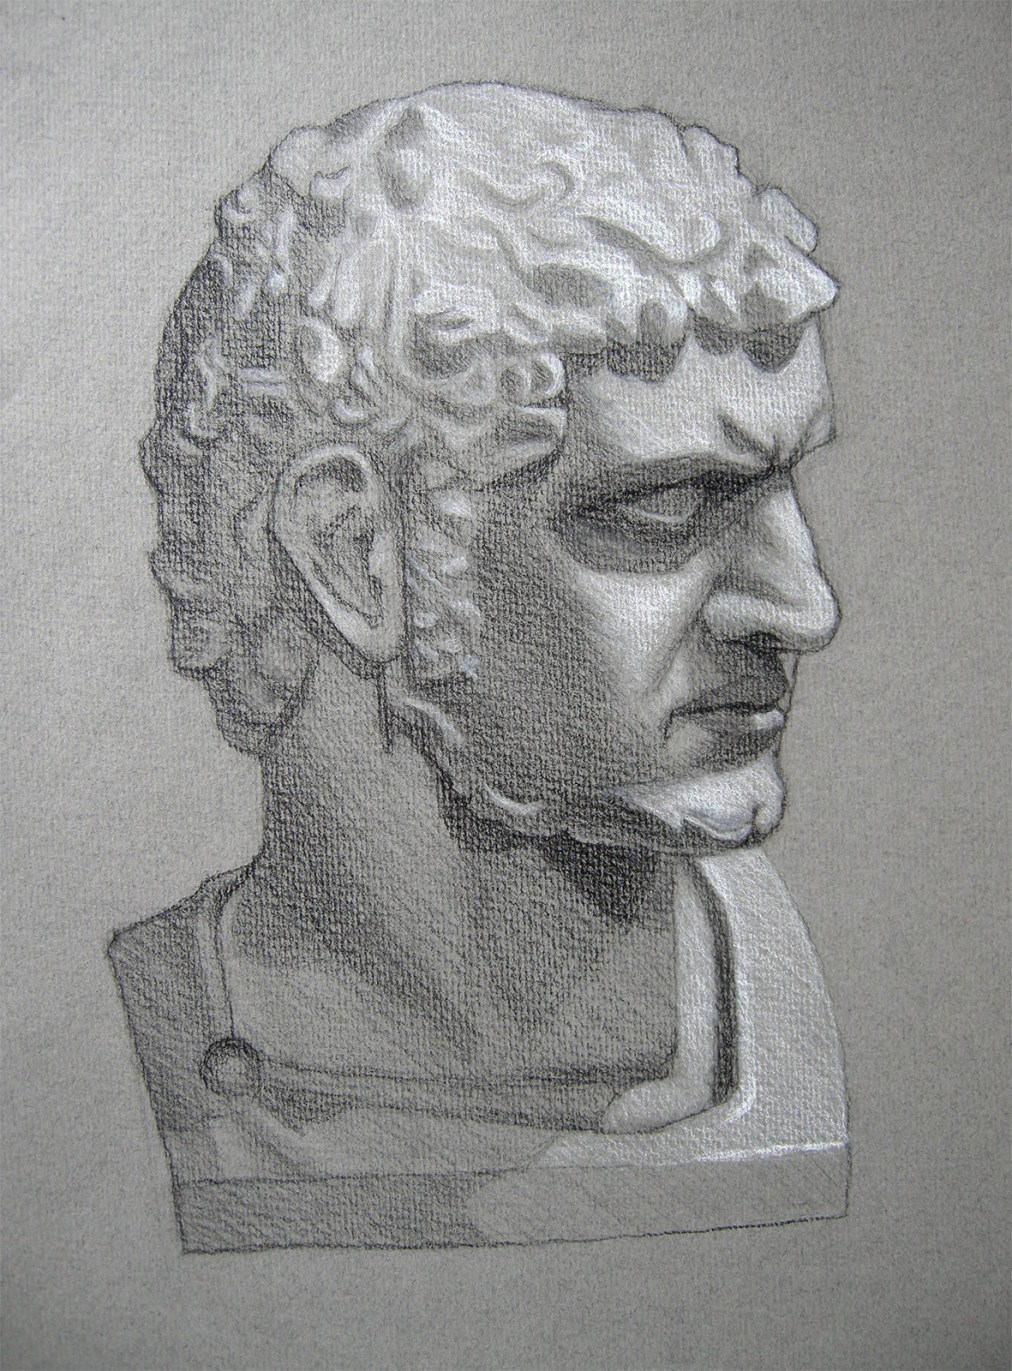 Marcus Aurelius by Tatyana Deniz, charcoal and chalk on paper, 2